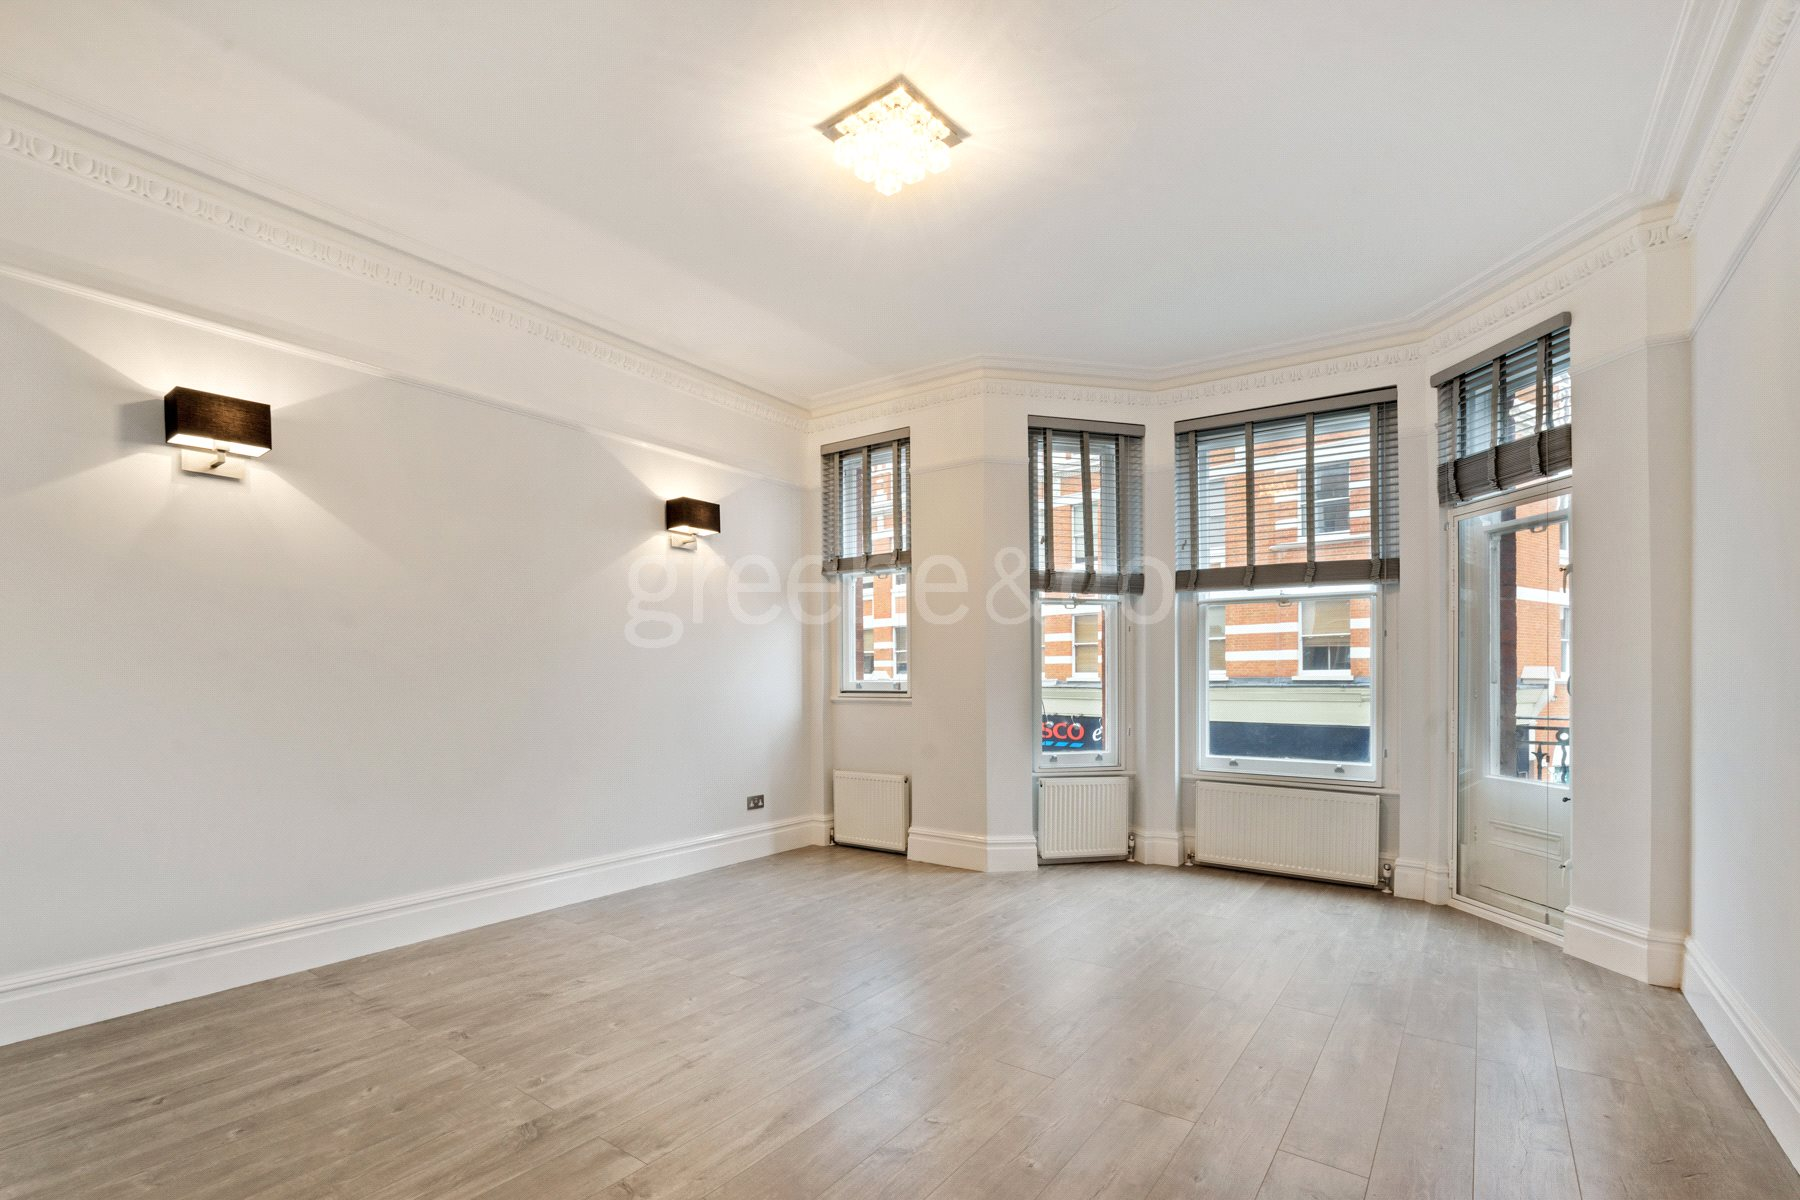 3 Bedrooms Flat for sale in Sandwell Mansions, West End Lane, London, NW6